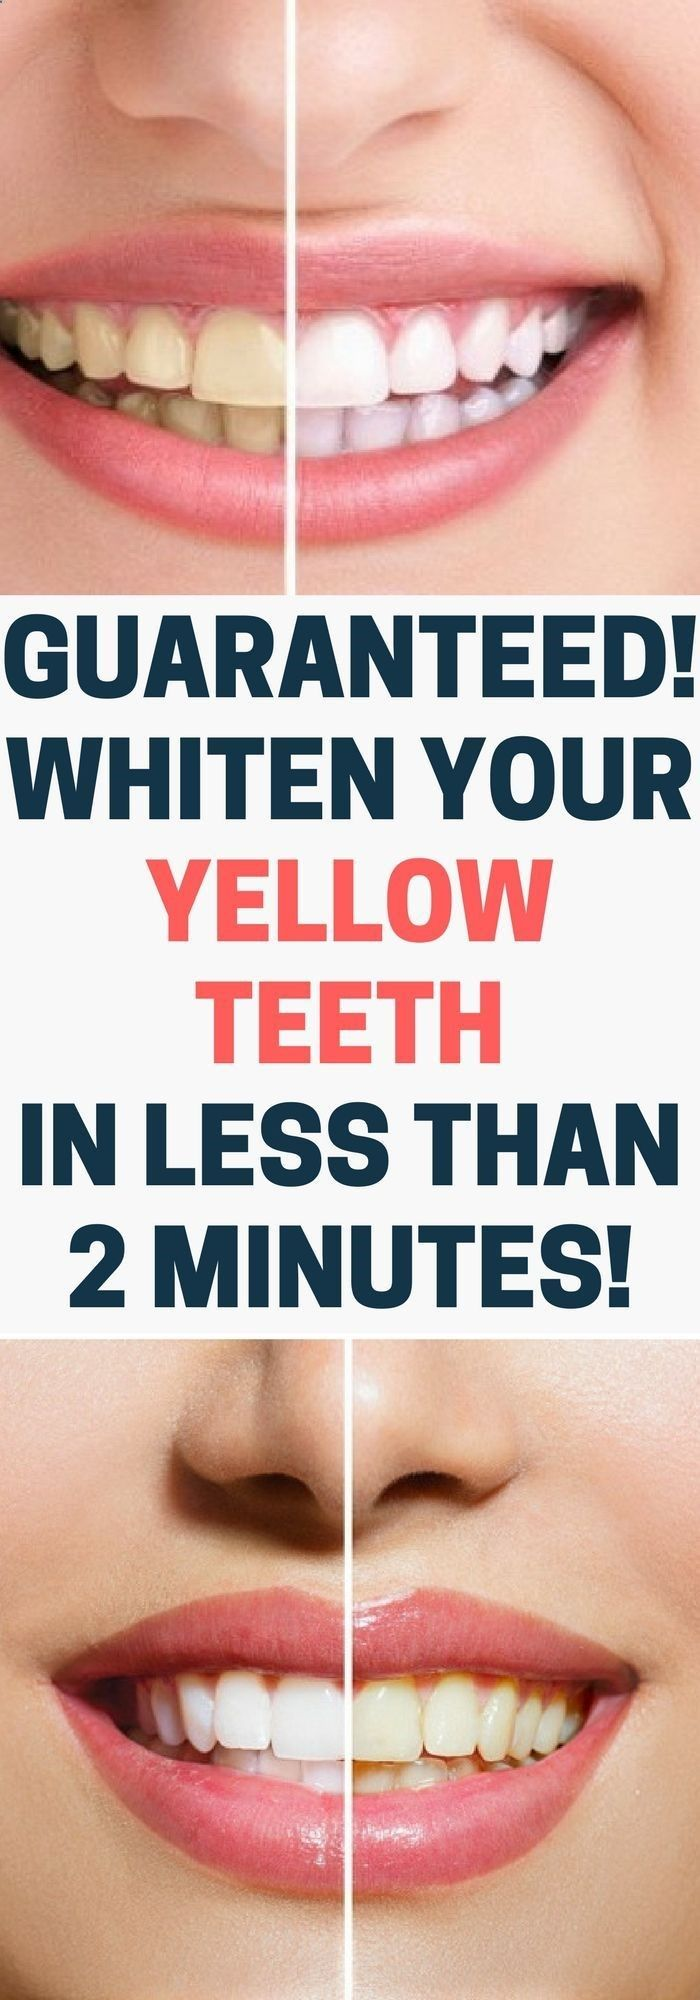 GUARANTEED! WHITEN YOUR YELLOW TEETH IN LESS THAN 2 MINUTES.!!! #CoconutOilSkin #howtowhitenyourteeth